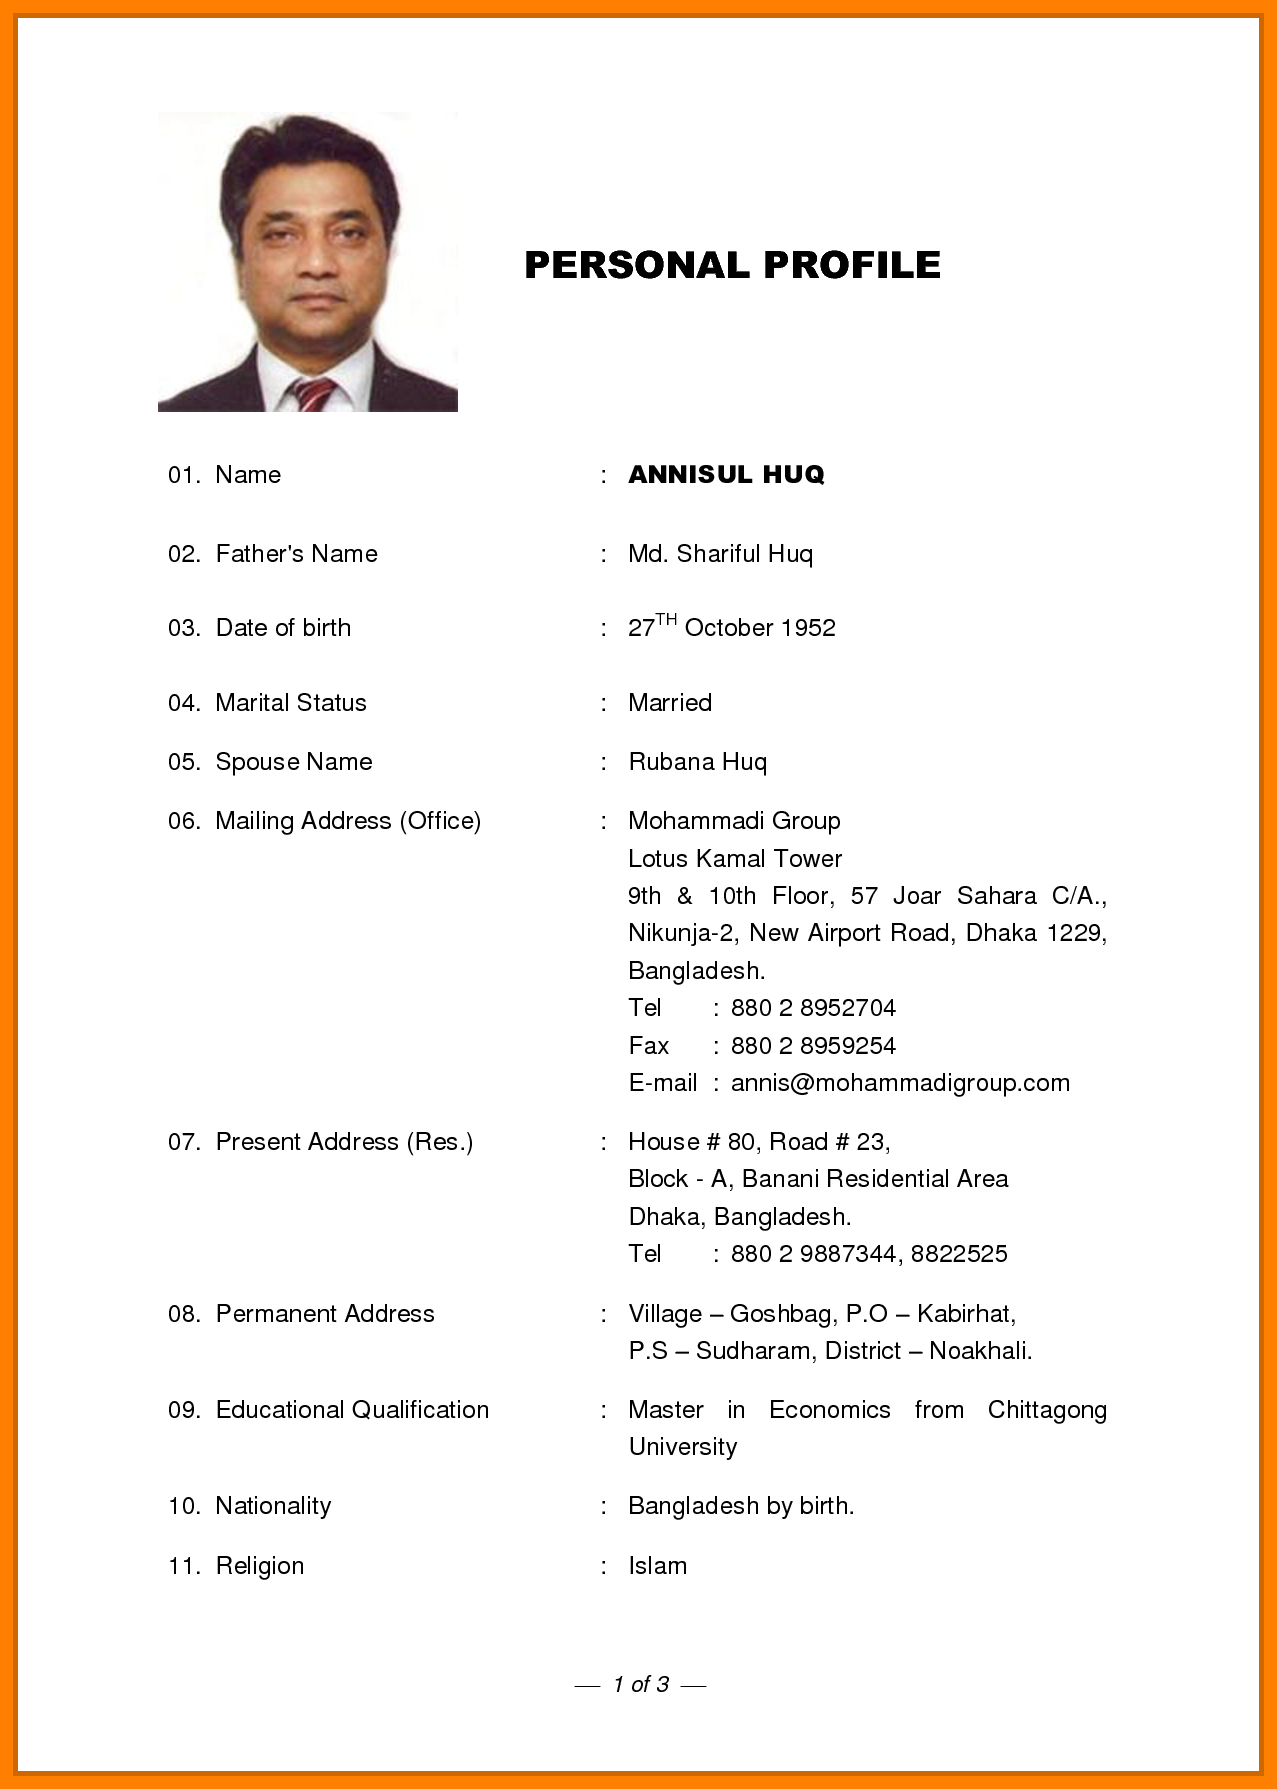 Marriage Resume Format For Girl Pdf Pin By Mohammad Parvej On Tareq Mahmmod In 2019 Biodata